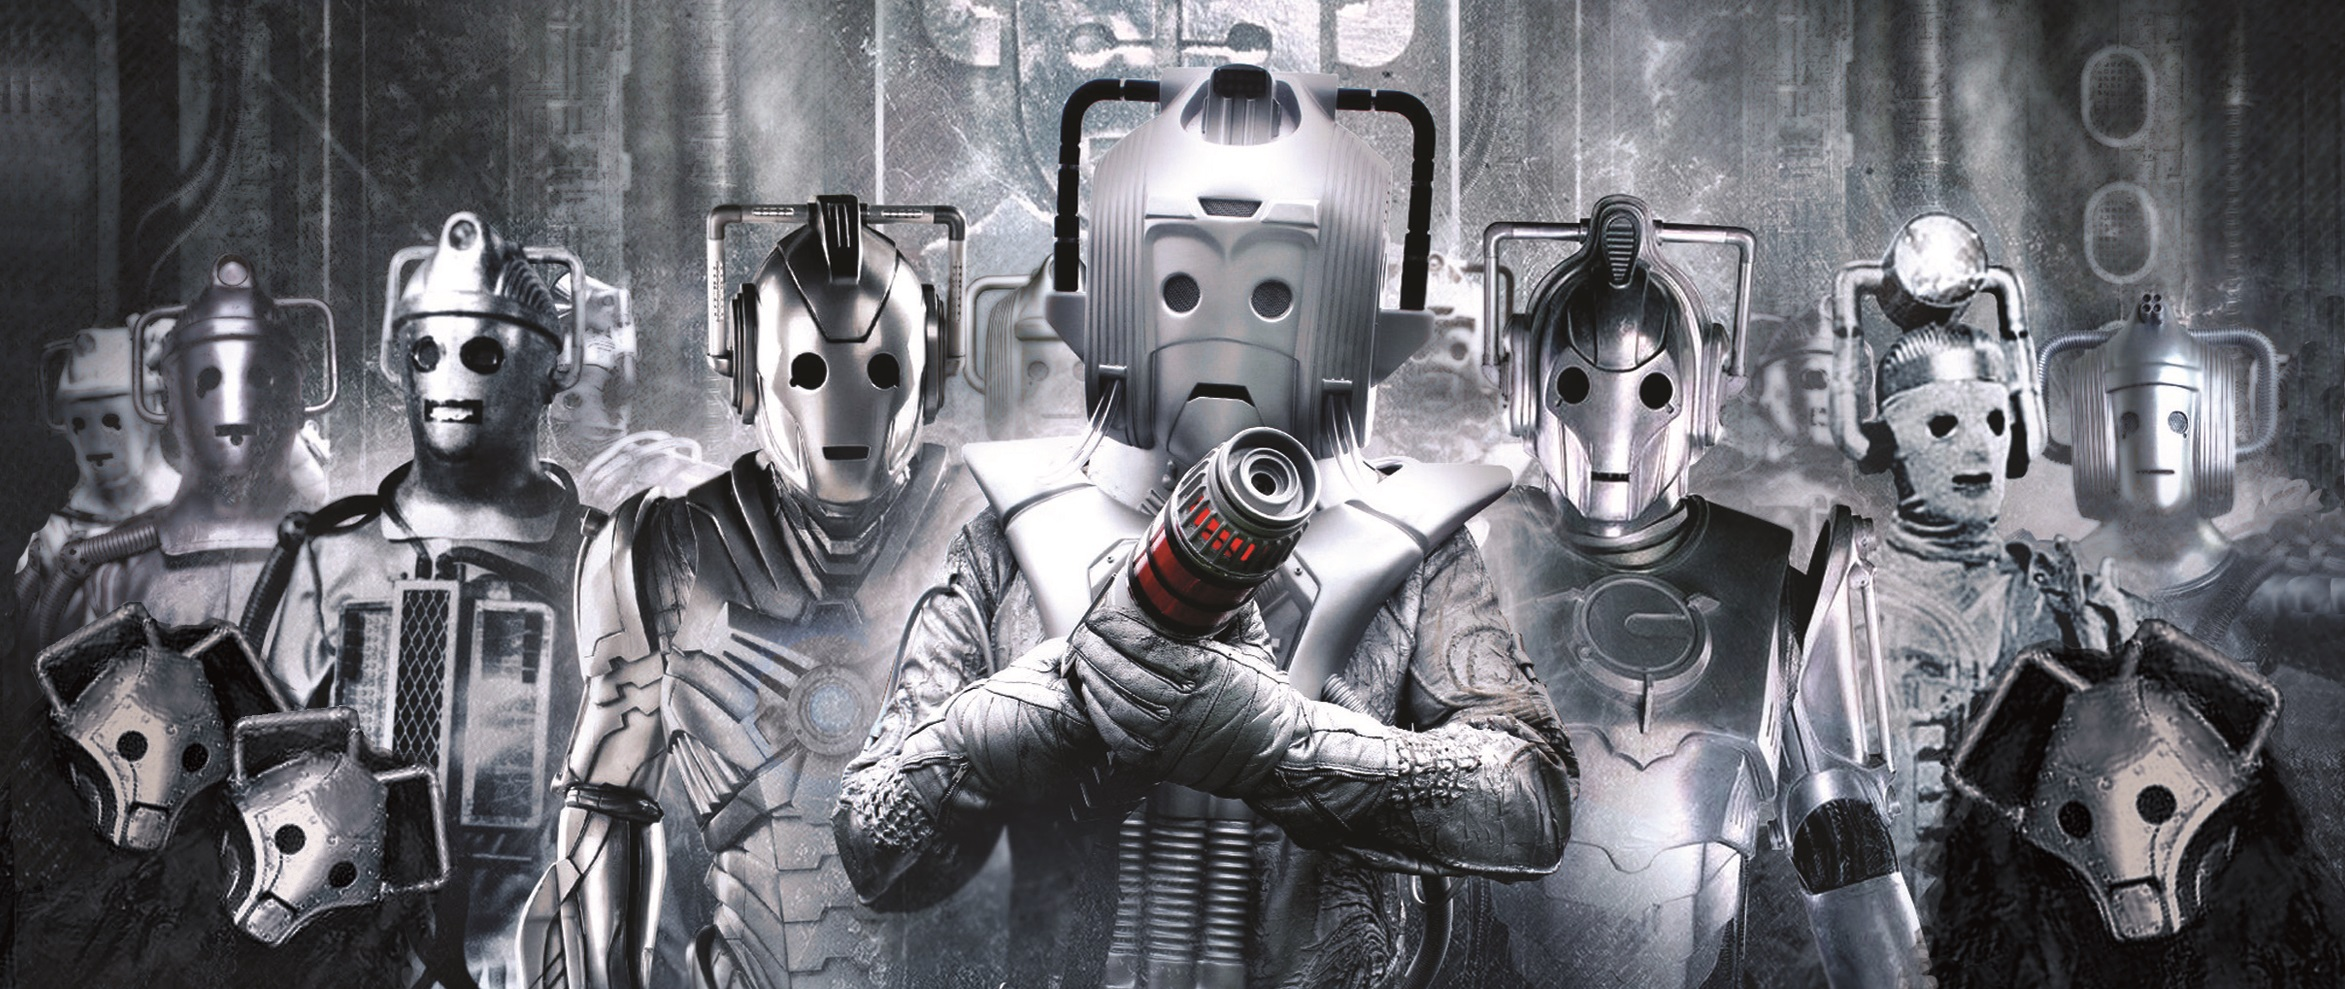 Tragedy Of The Cybermen Sci Fi And Fantasy Network